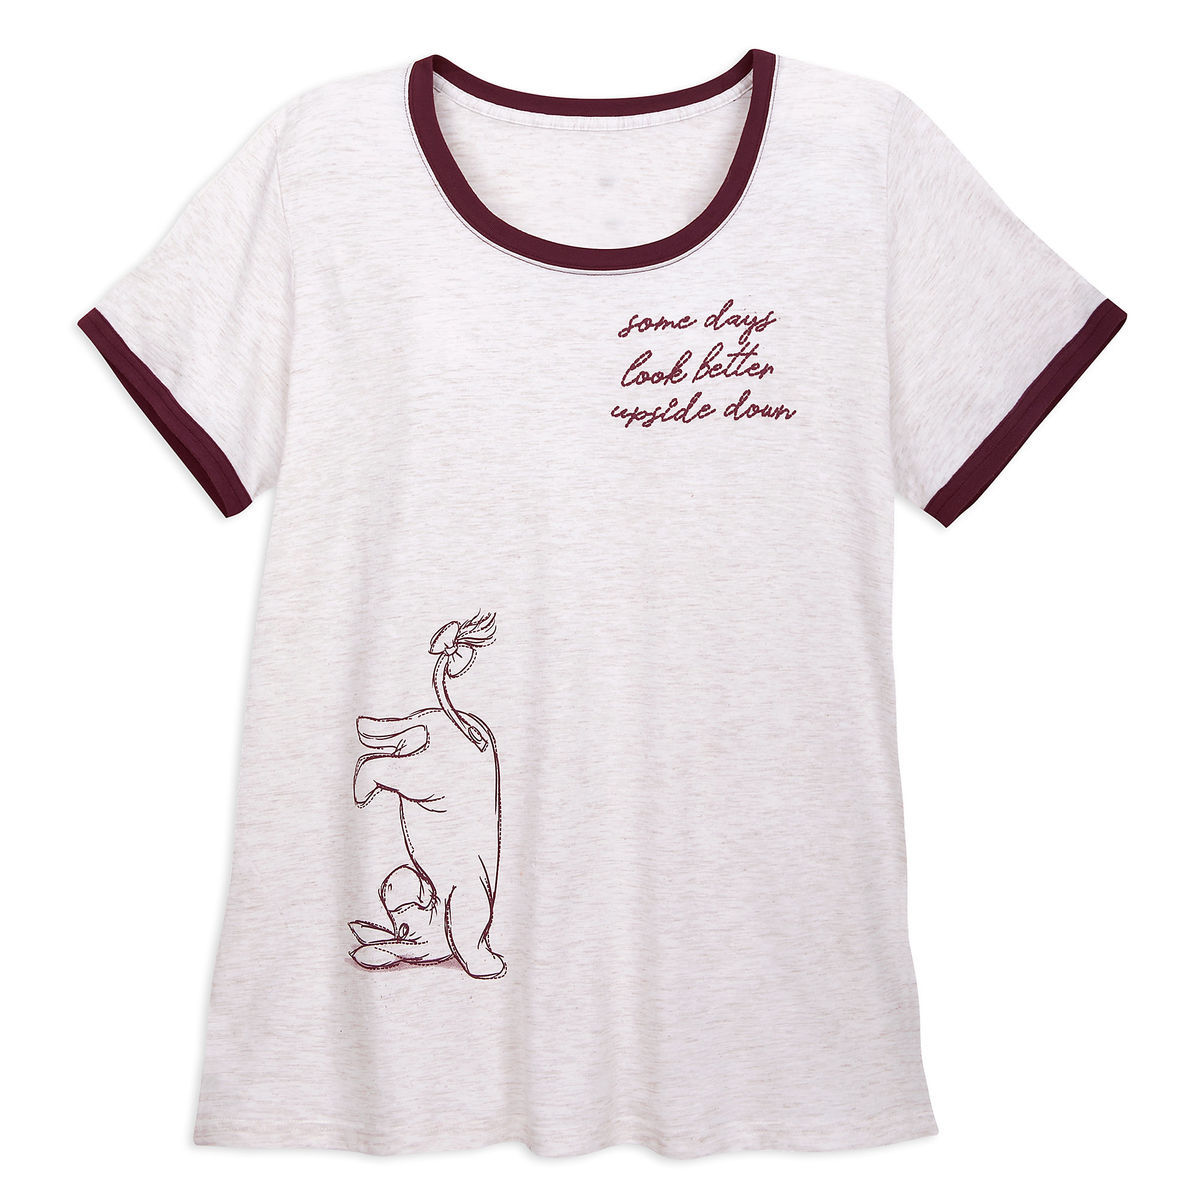 efbfb6fa05e Product Image of Eeyore Ringer T-Shirt for Women - Winnie the Pooh -  Extended